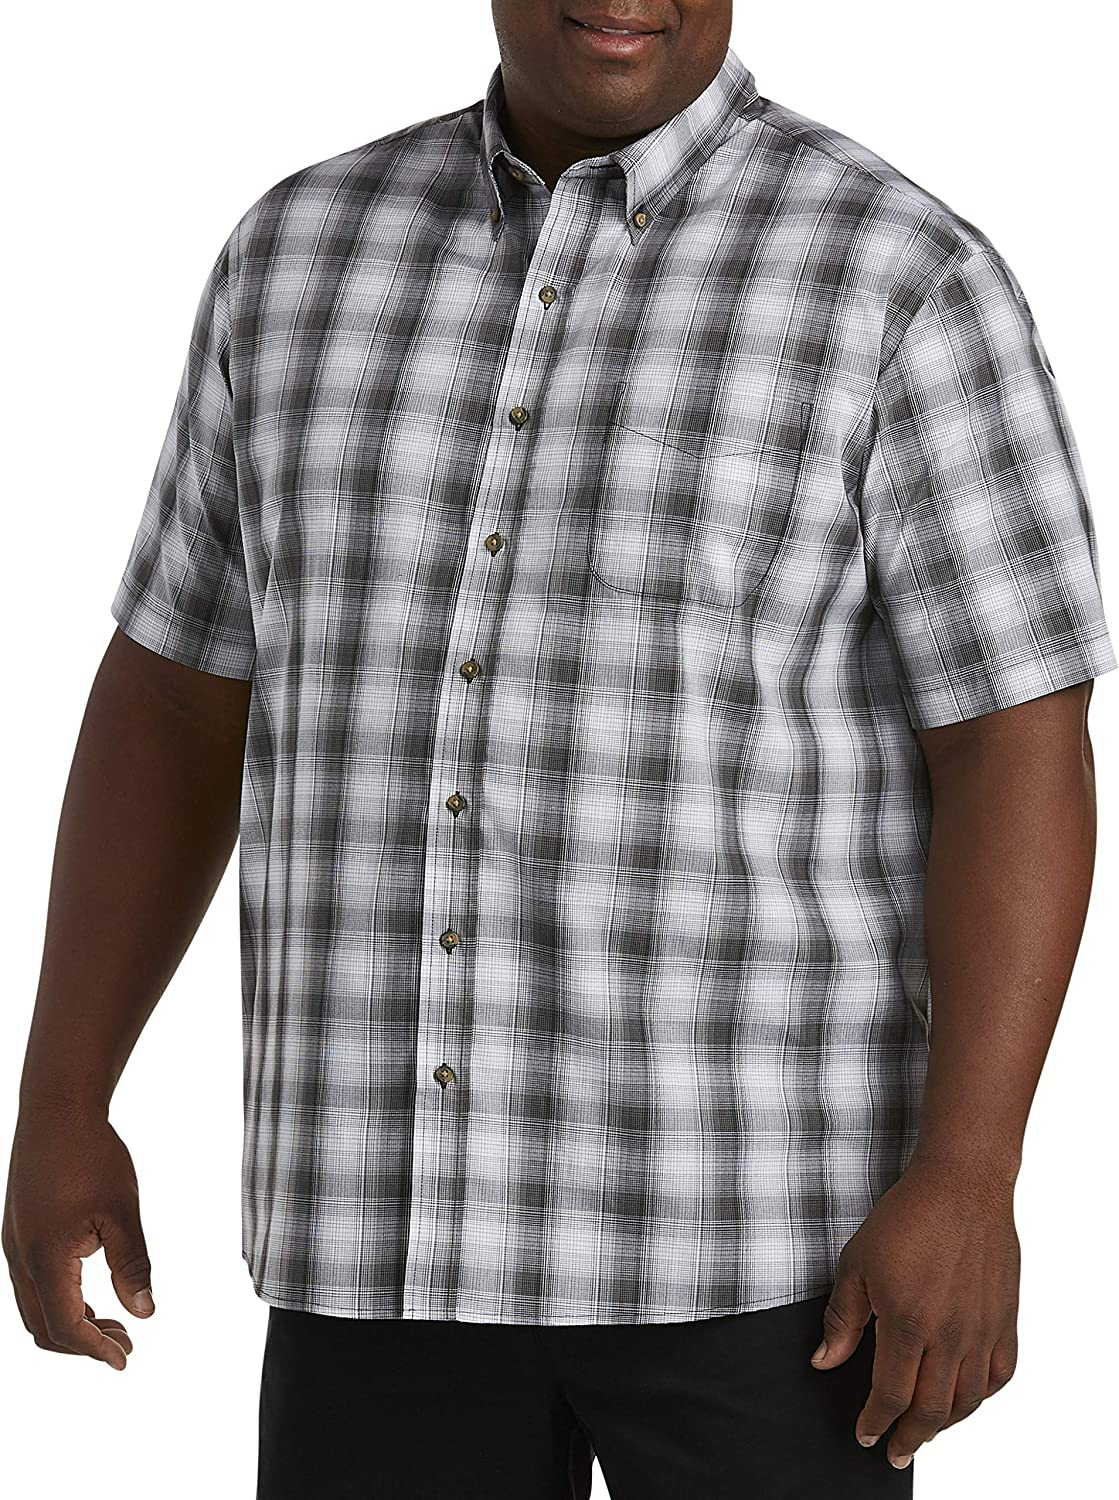 Harbor Bay by DXL Big and Tall Easy-Care Large Plaid Sport Shirt, Smoked Pearl